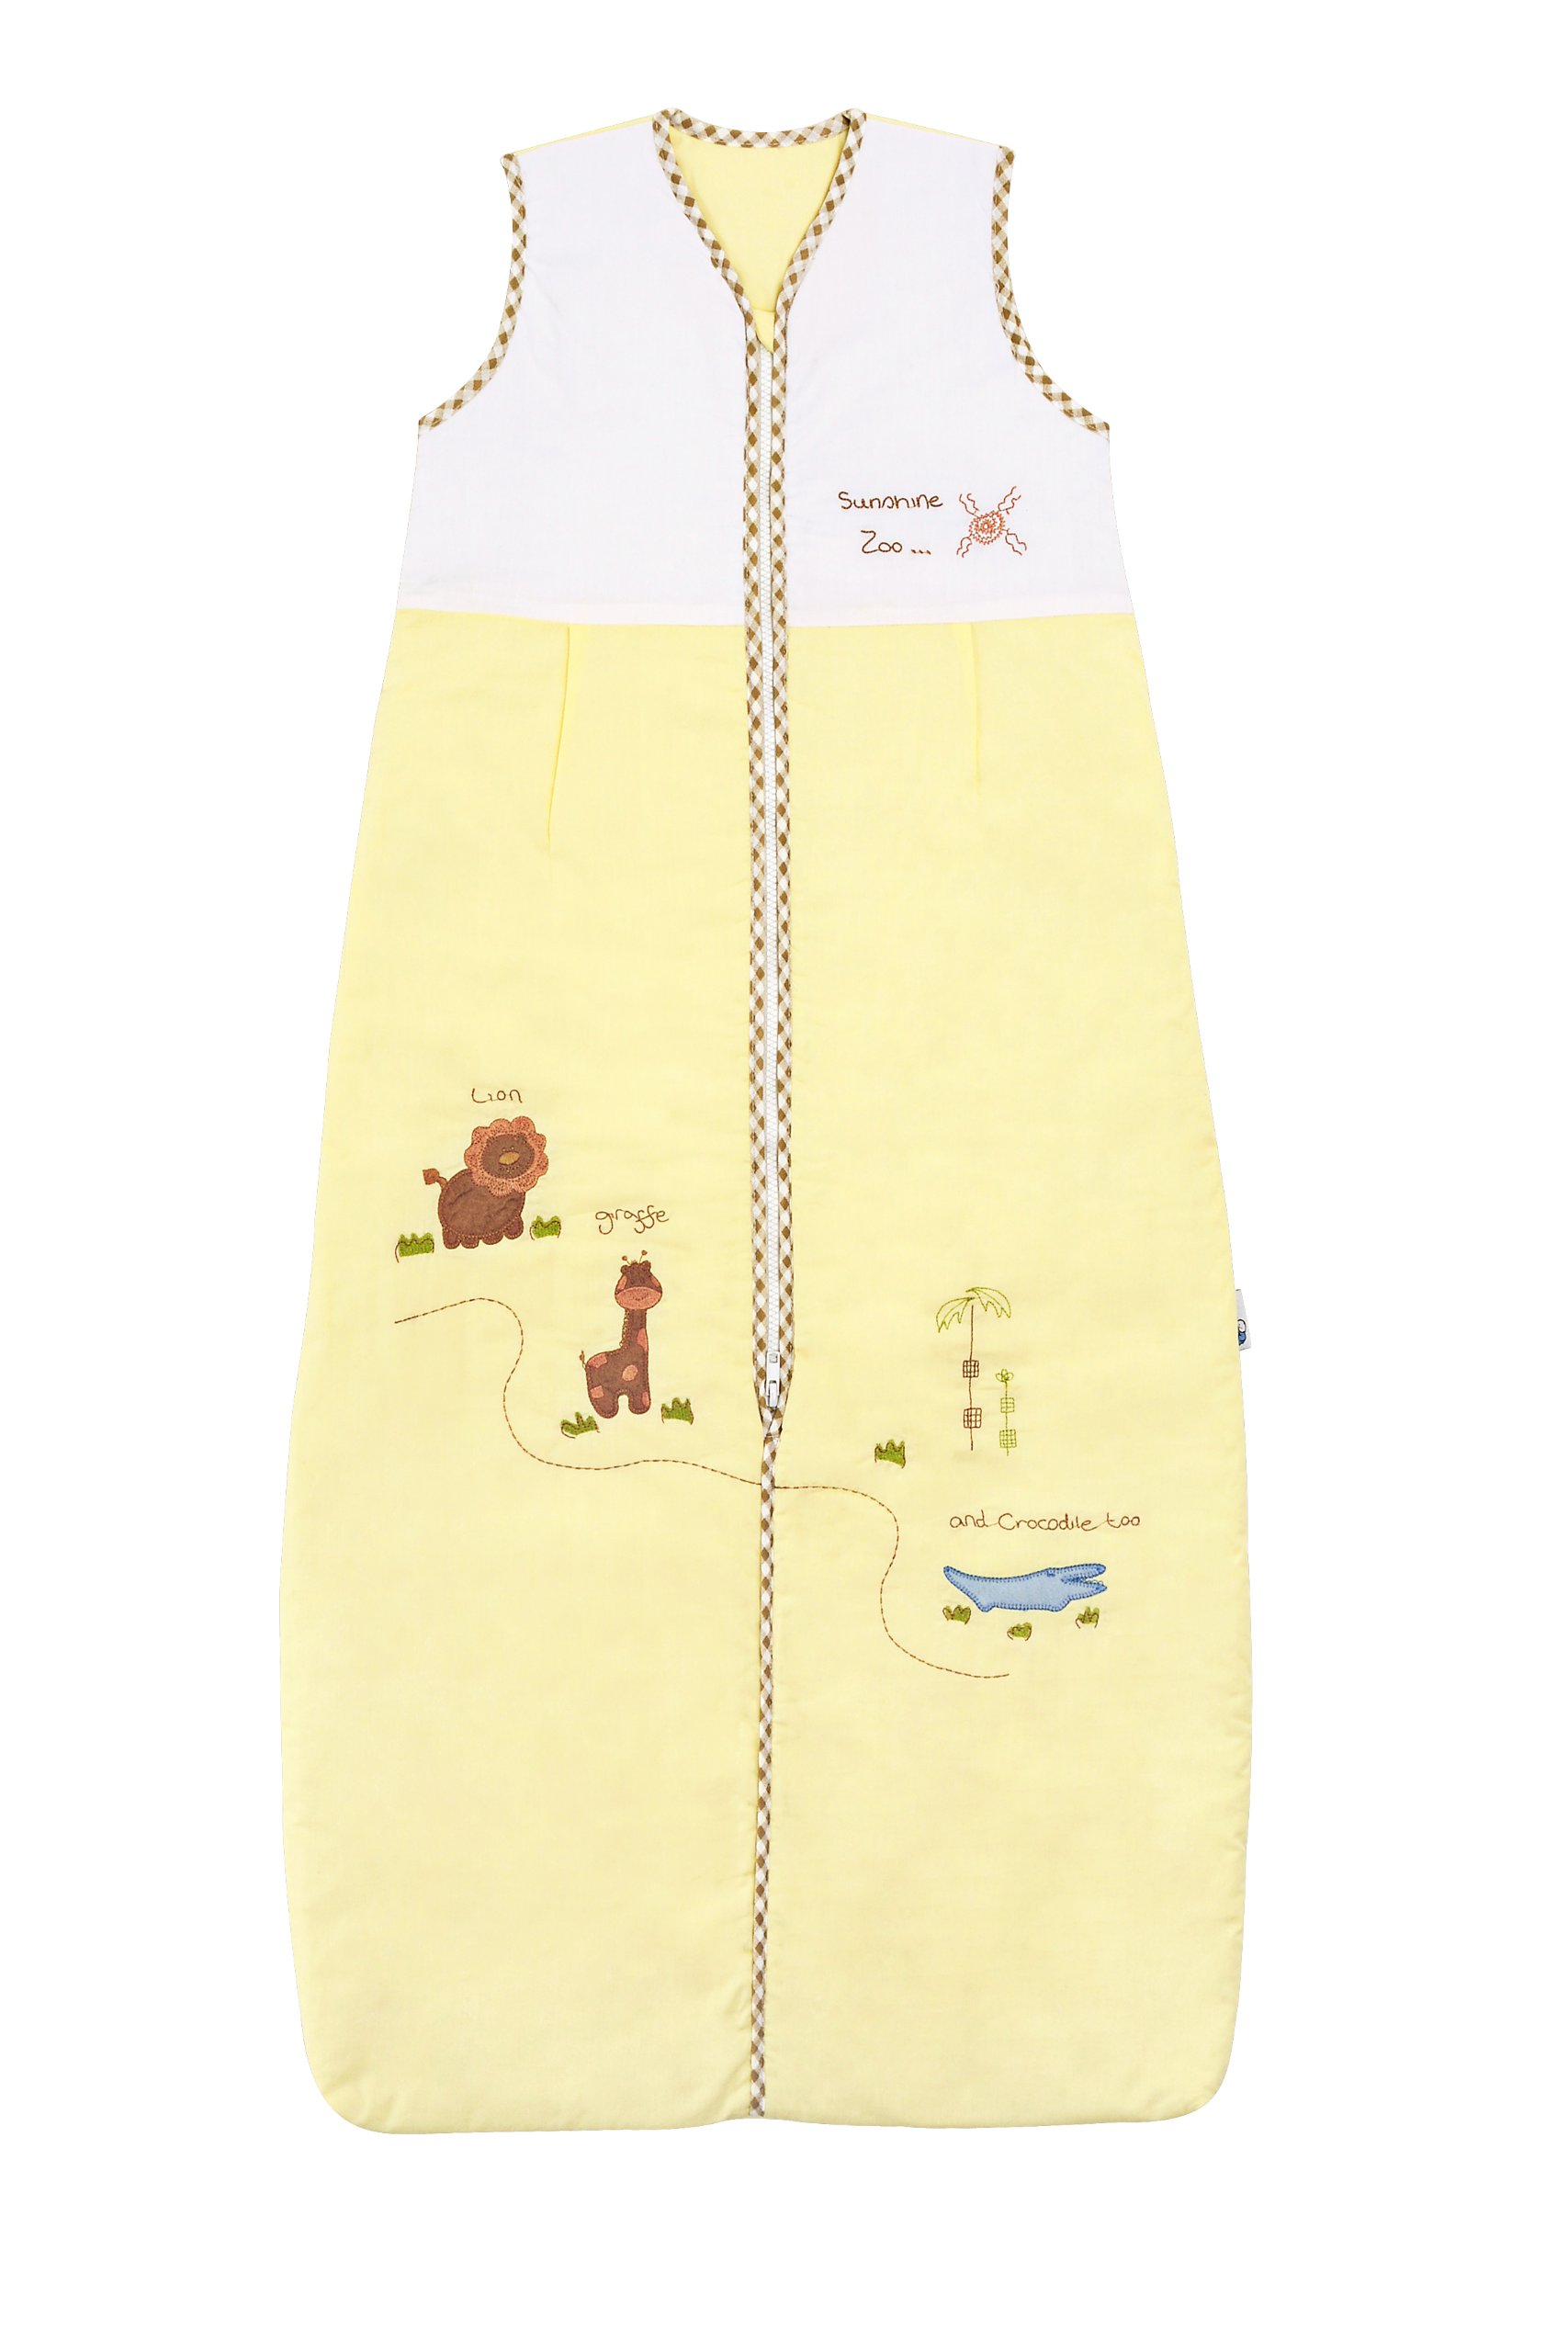 Slumbersafe Summer Toddler Sleeping Bag 0.5 Tog - Sunshine Zoo, 18-36 Months/